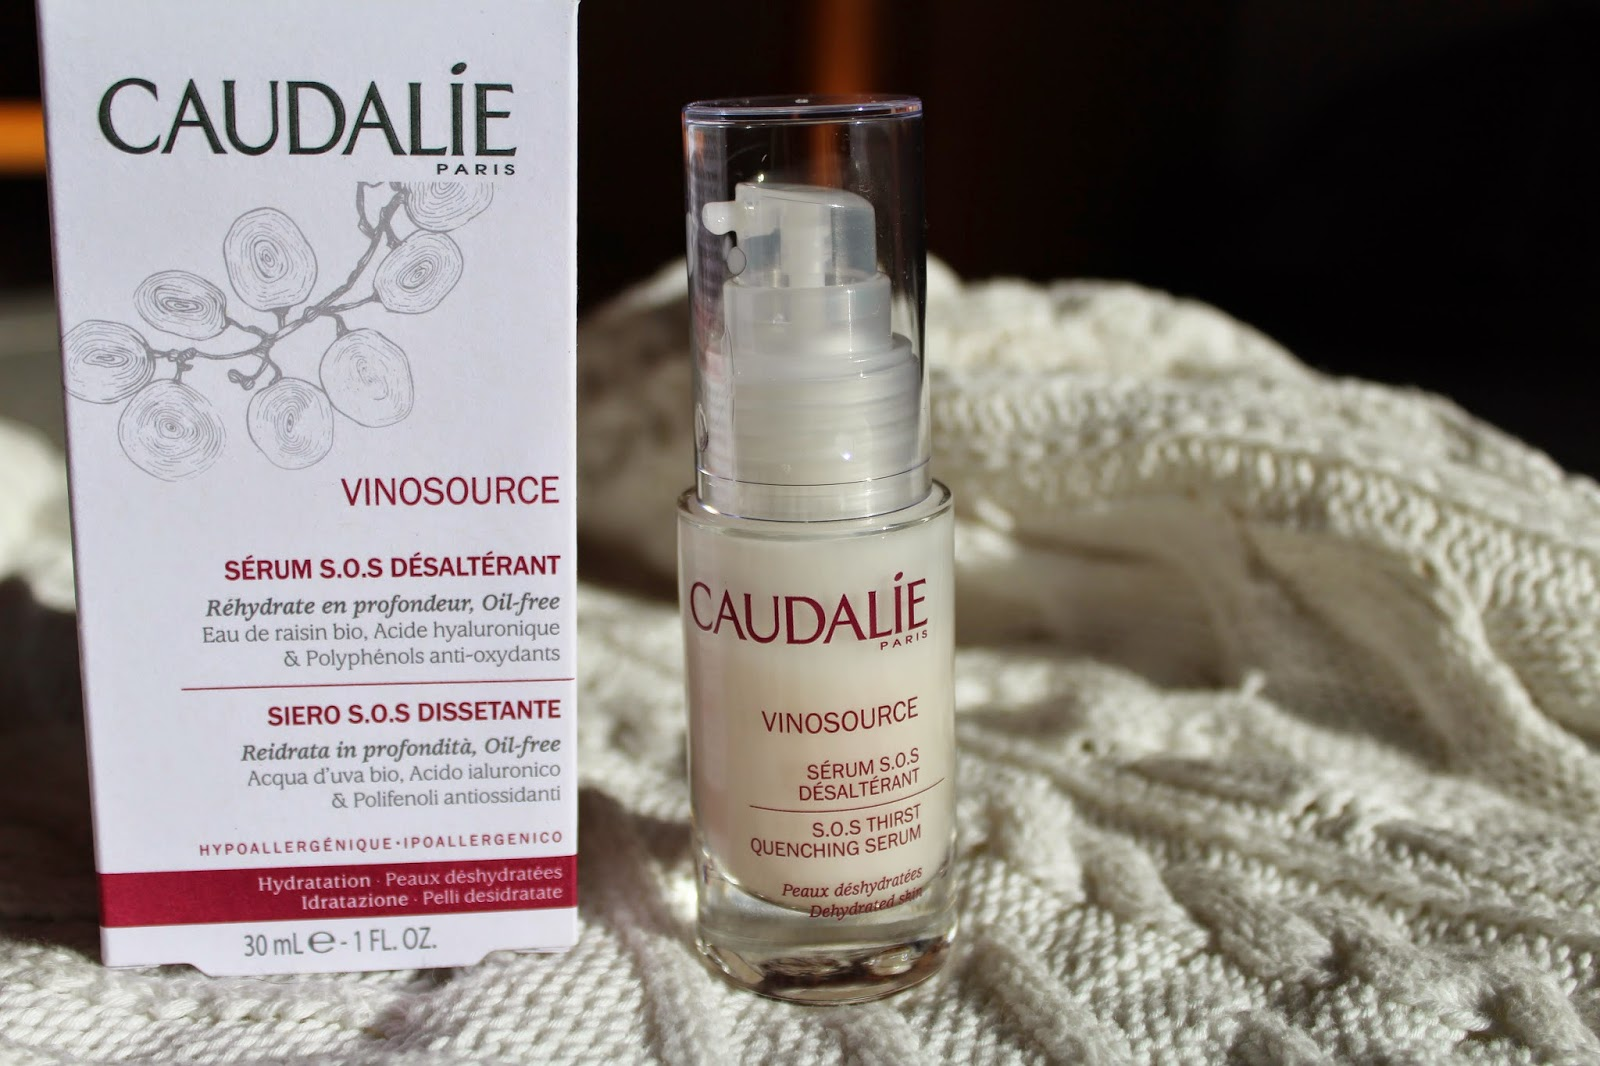 Caudalie Siero S.O.S Vinosource Dissetante : review